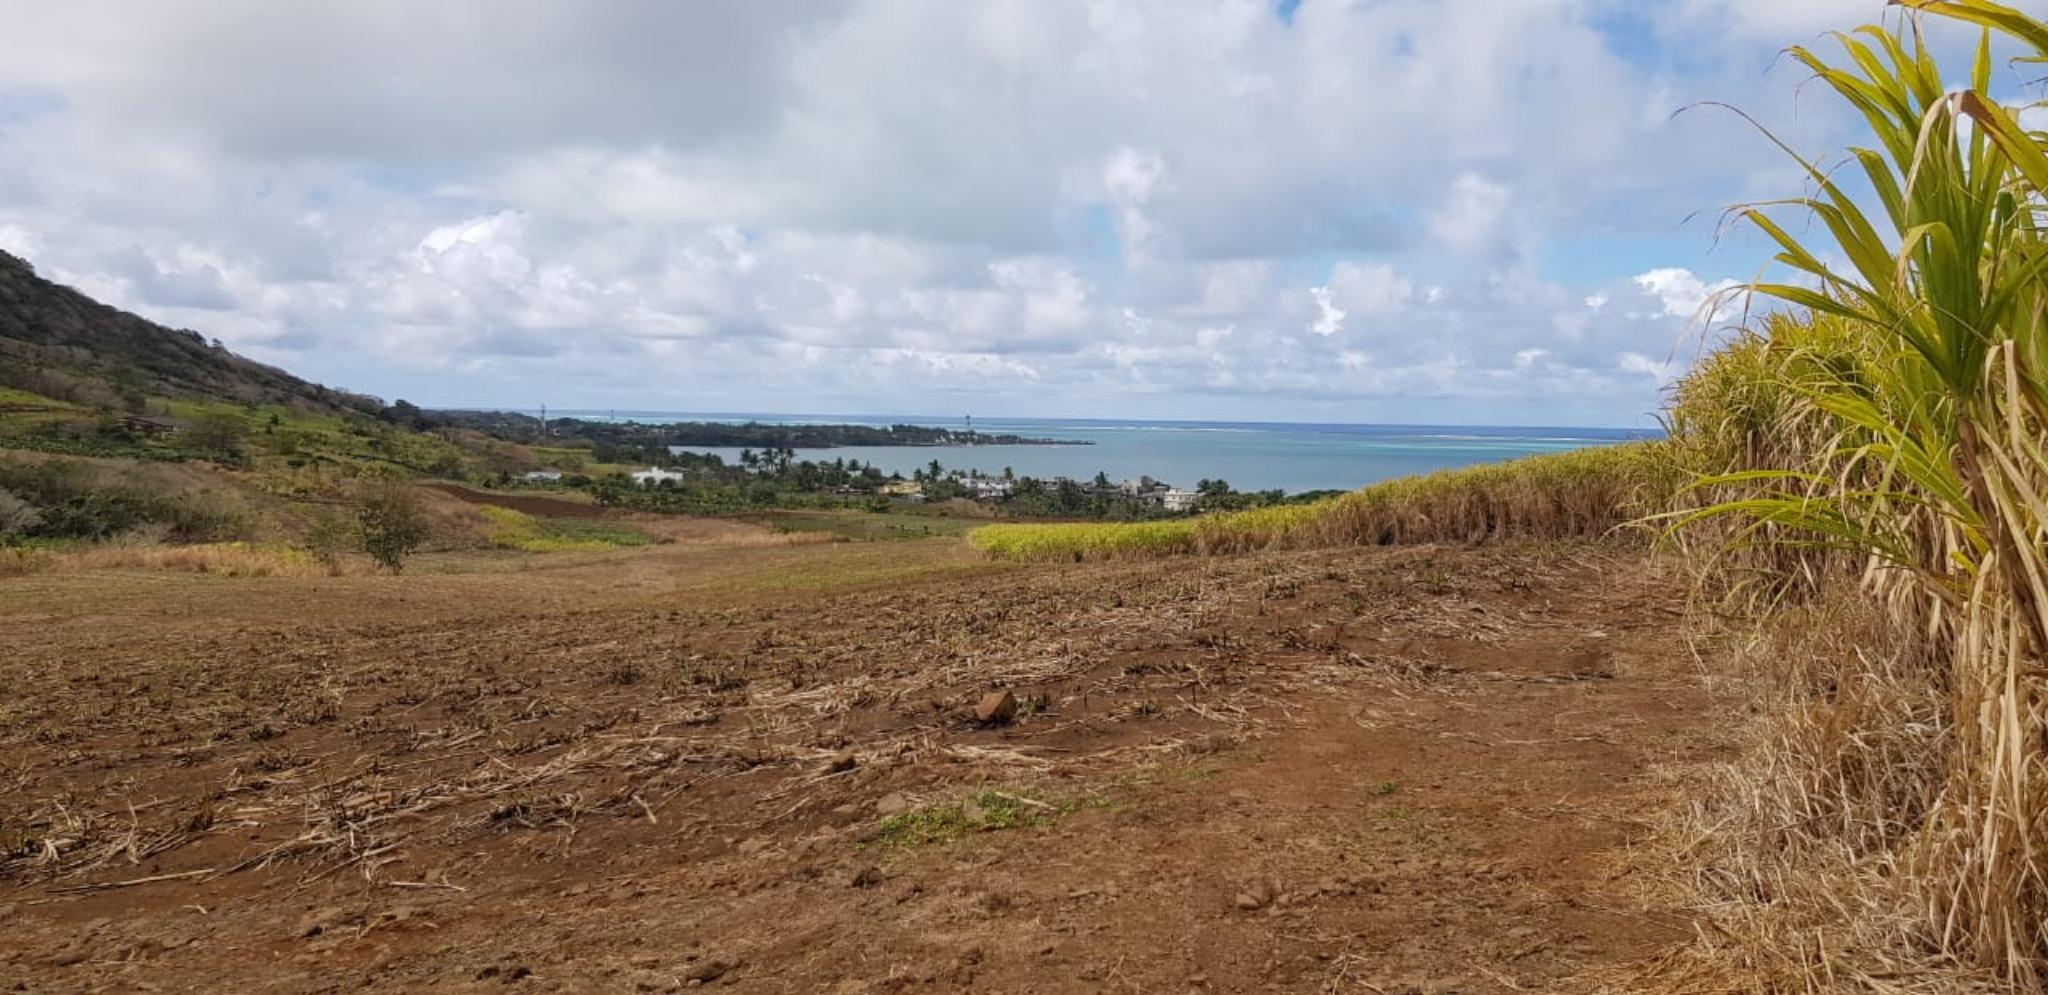 FOR SALE – Wonderful agricultural land of 6 acres 44 with sea view at Quatre Soeurs